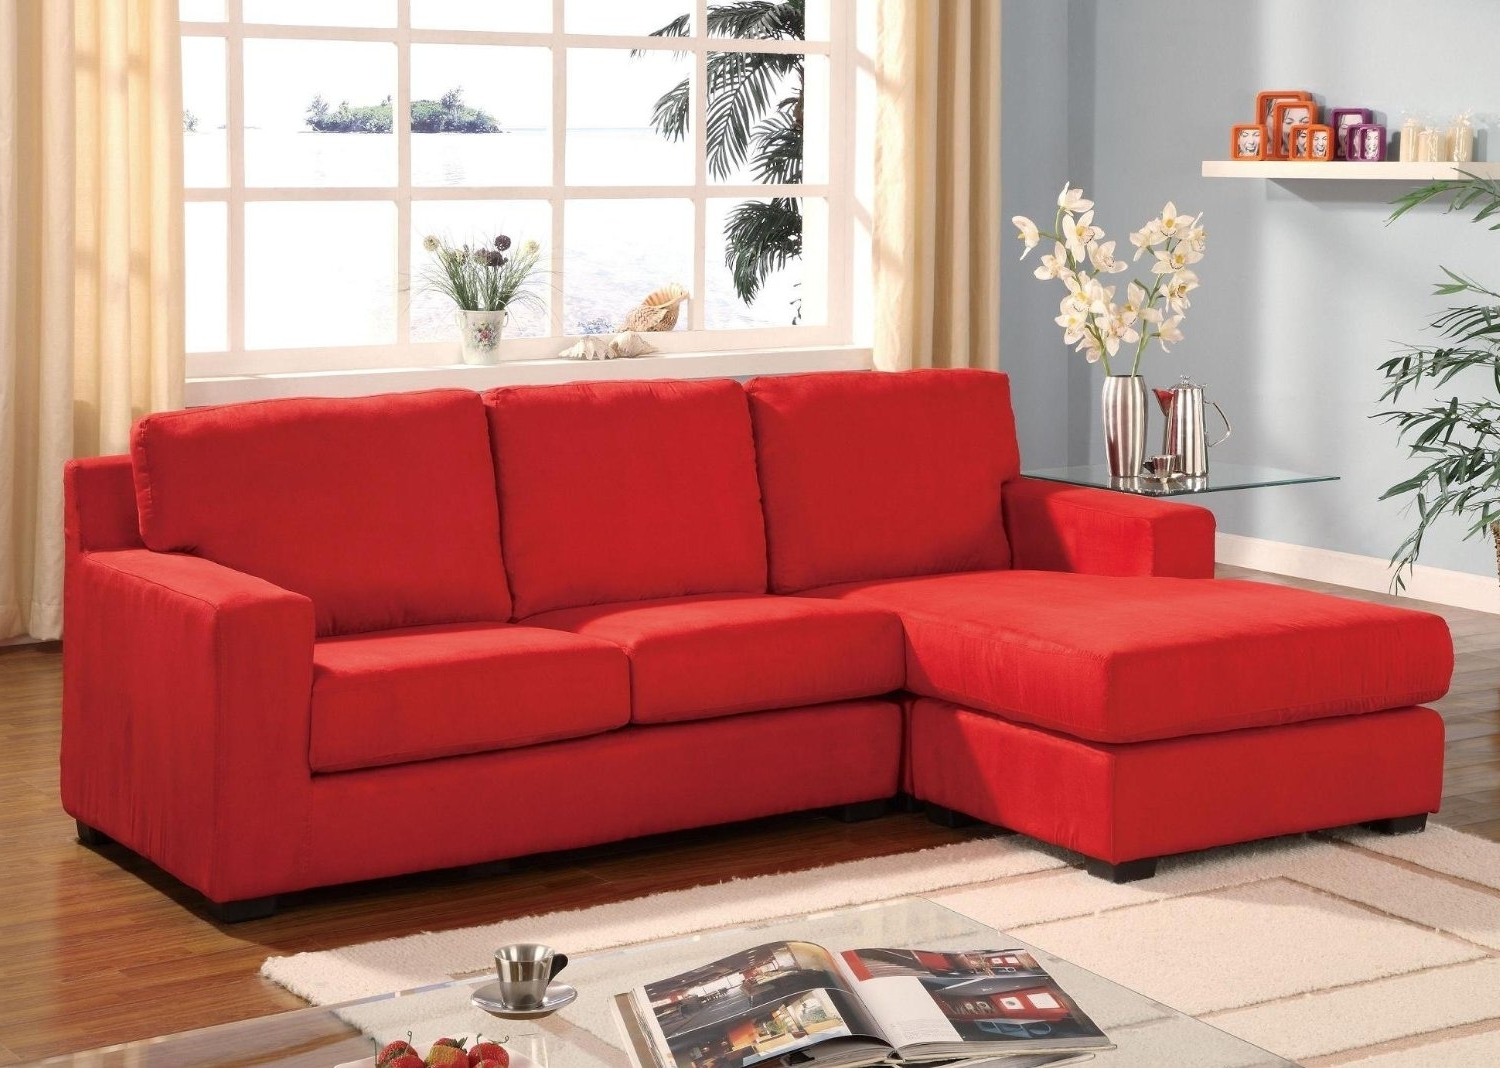 Sofa : Red Microfiber Sectional Inspirational Black And Red Regarding Most Recently Released Red Sleeper Sofas (View 7 of 20)